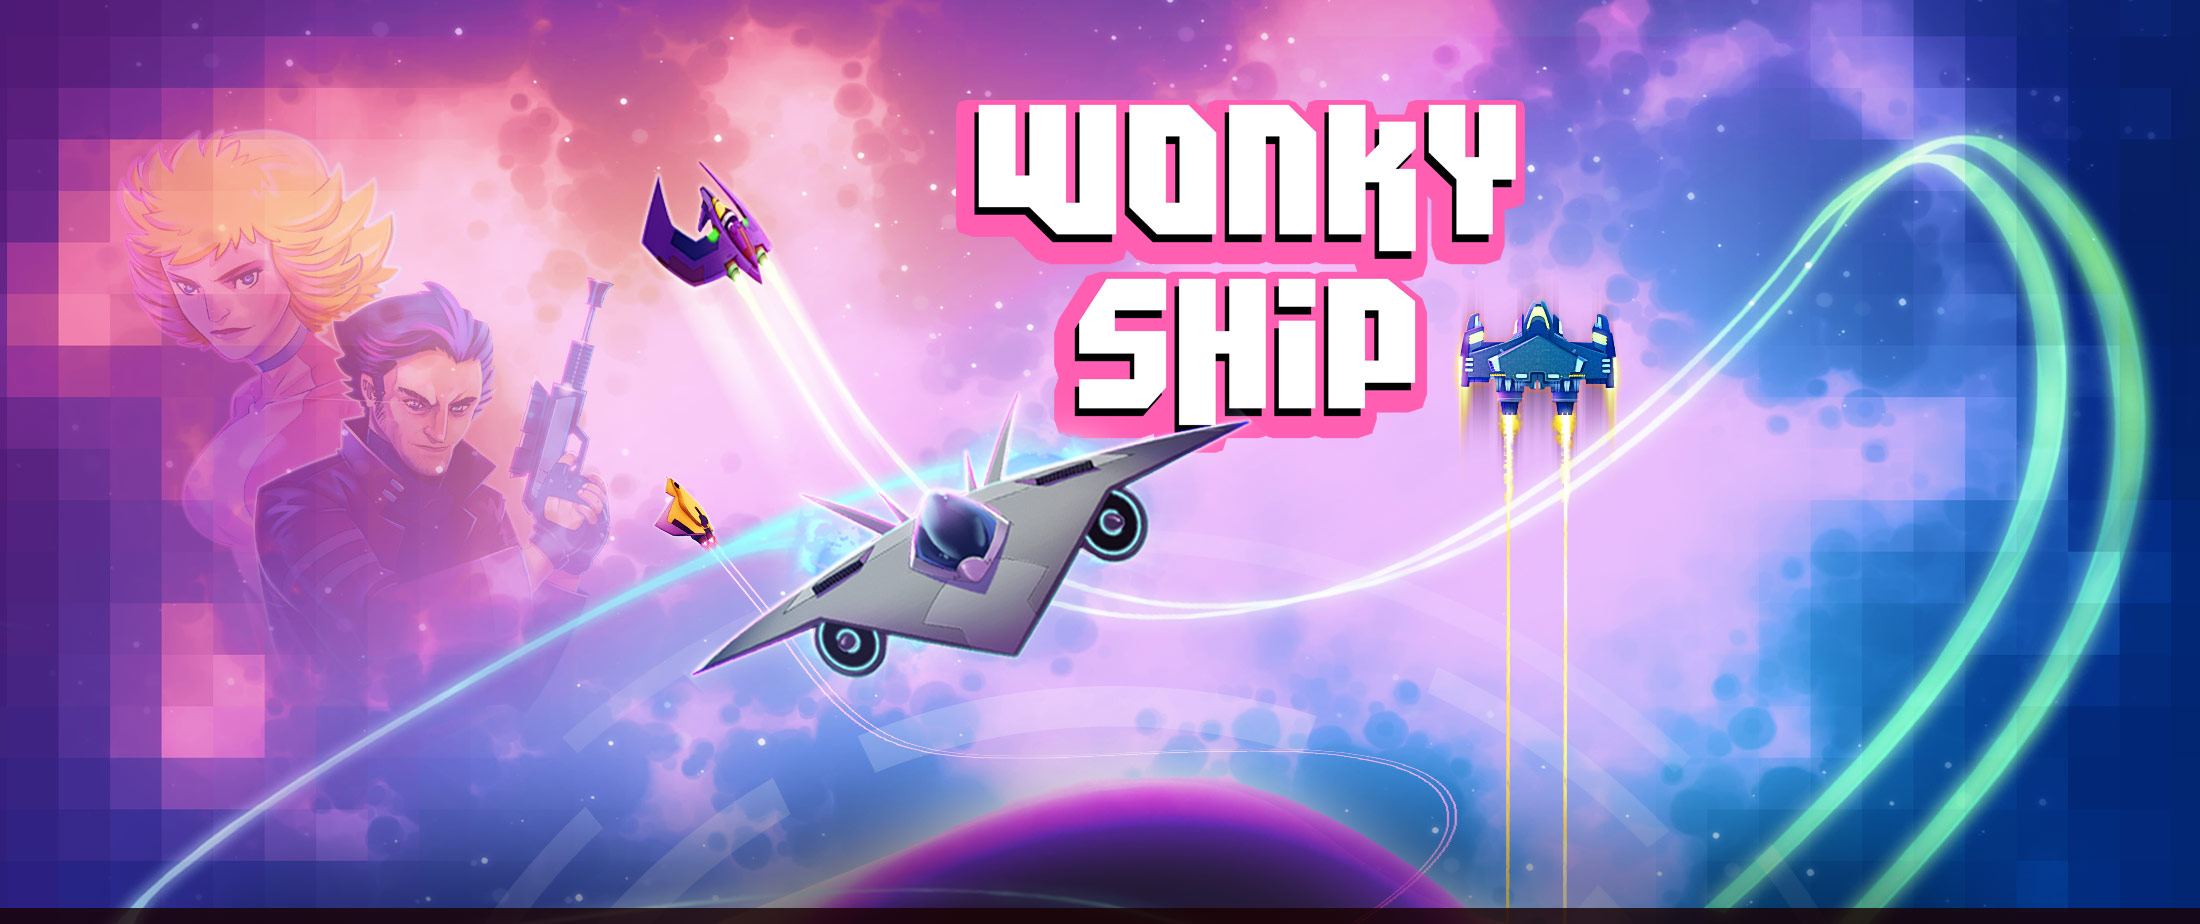 Weave, dodge and flip to survive in Wonky Ship for iOS